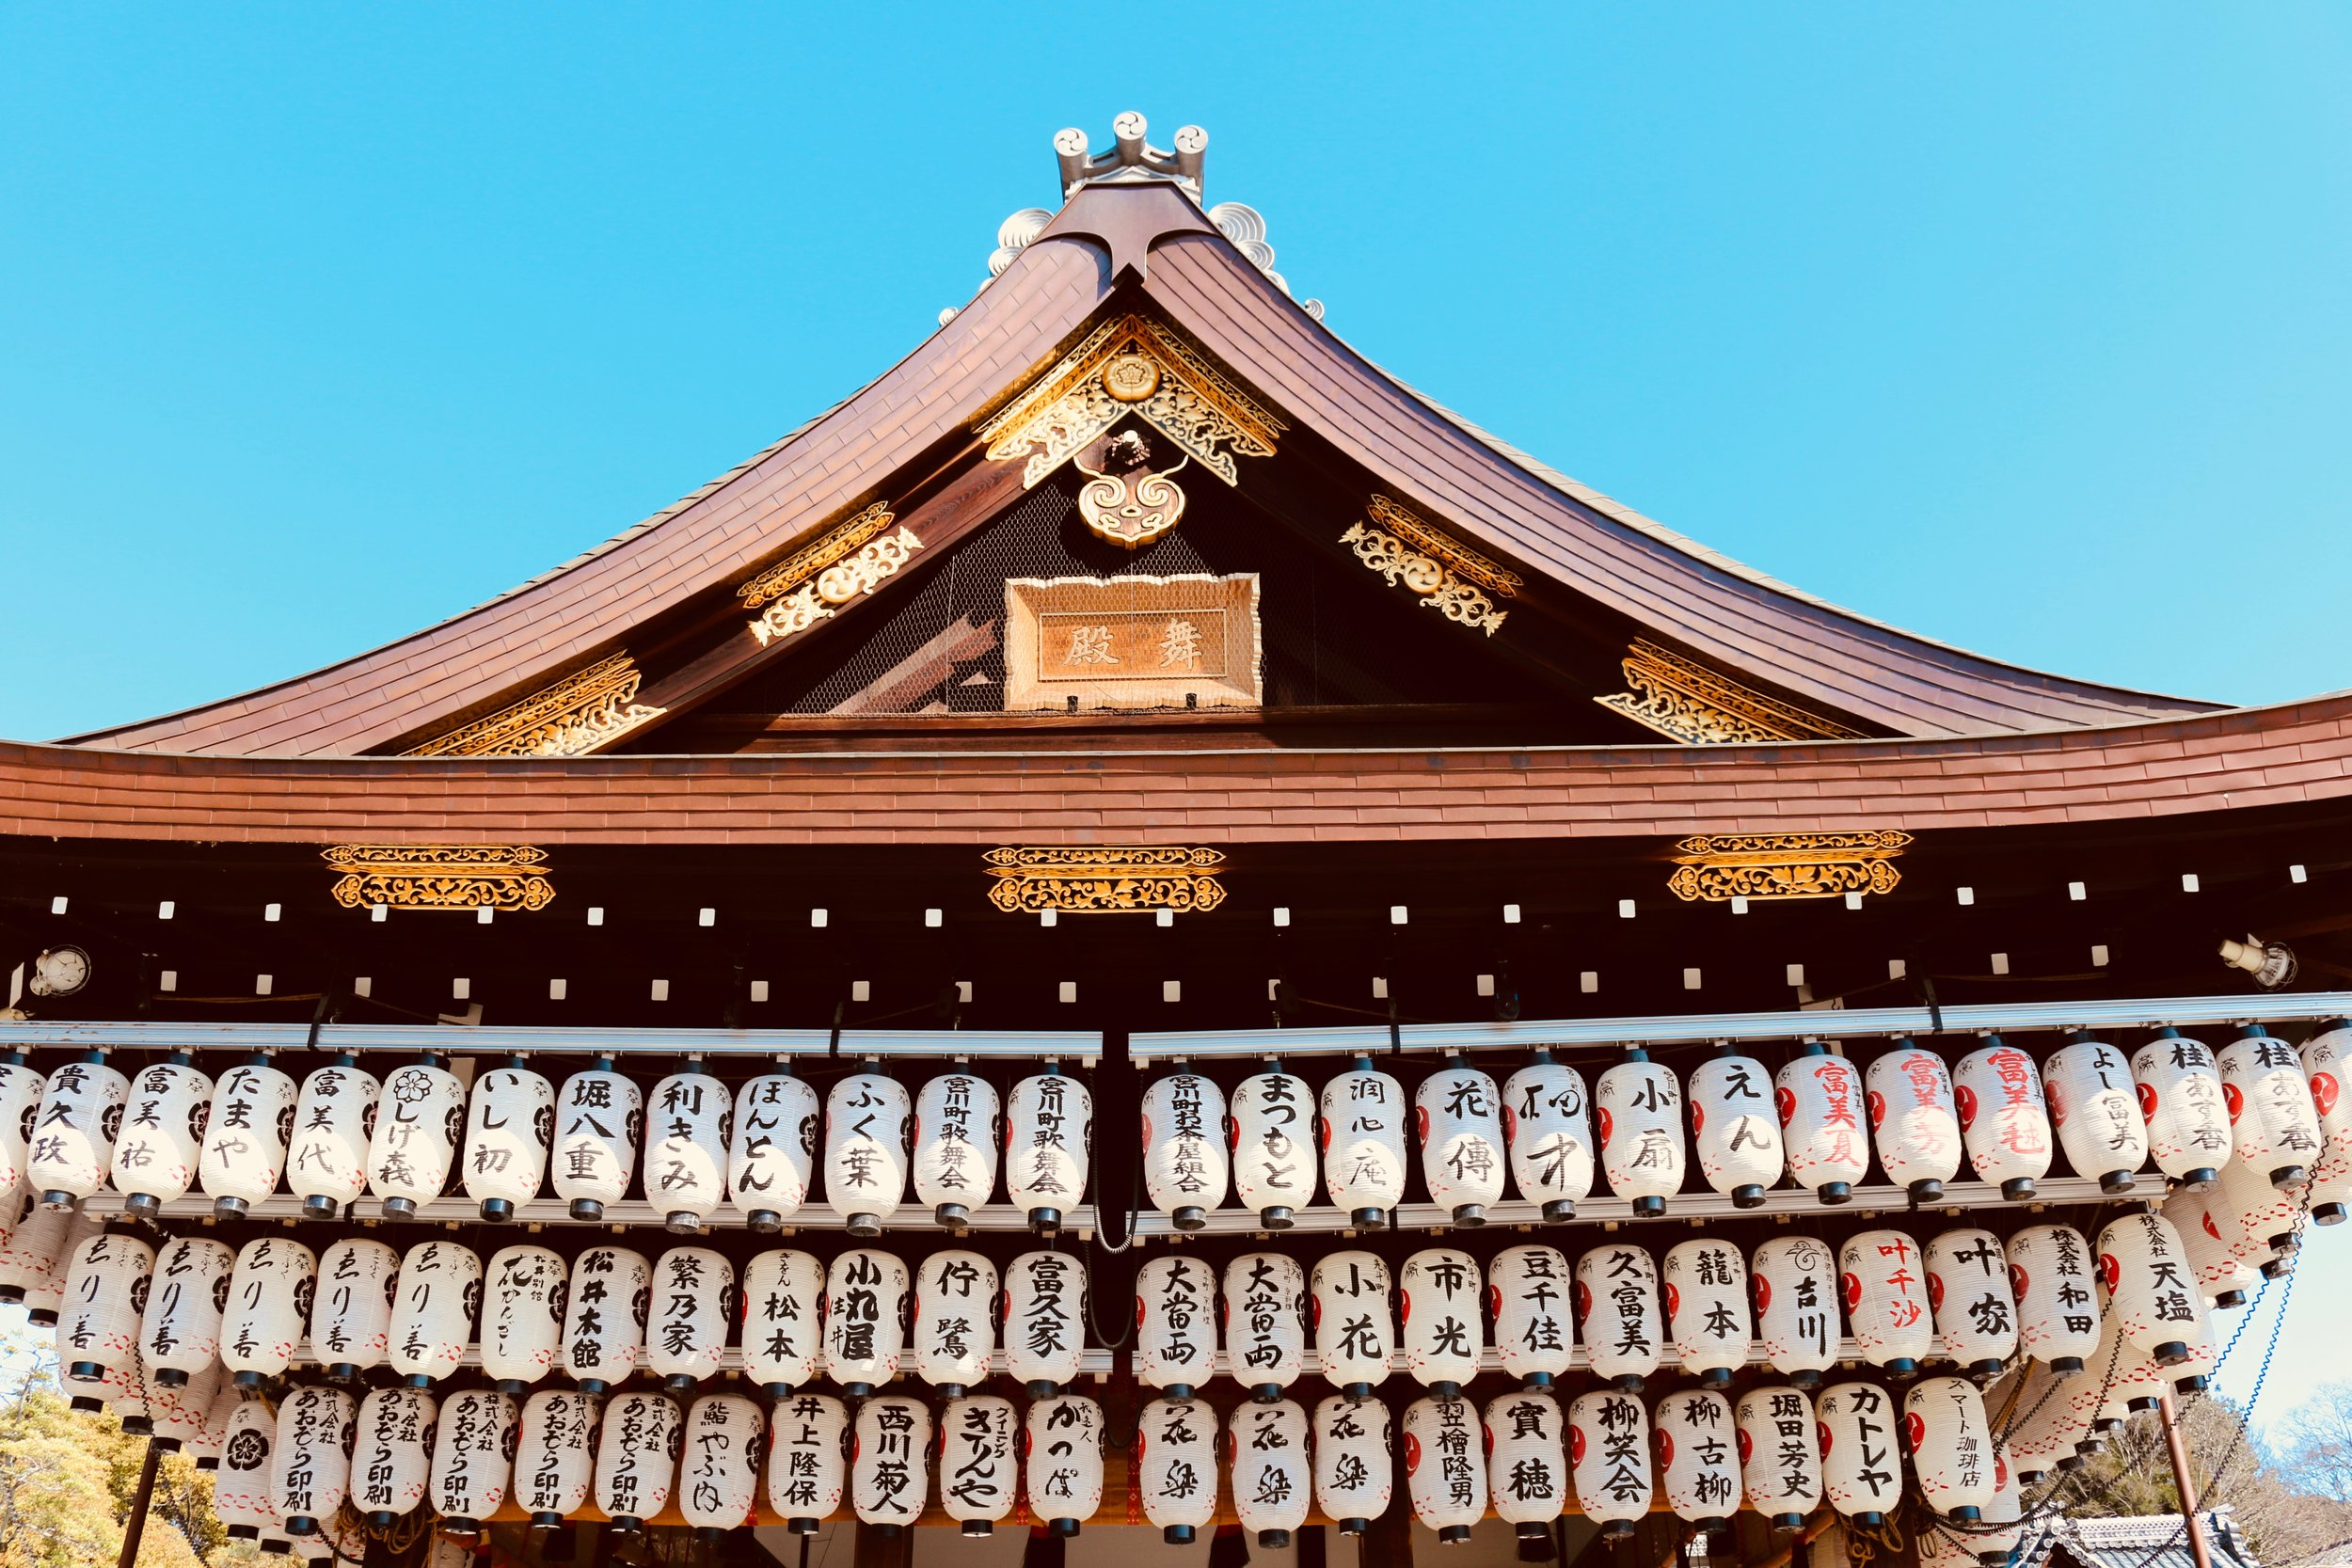 Inside Yasaka shrine